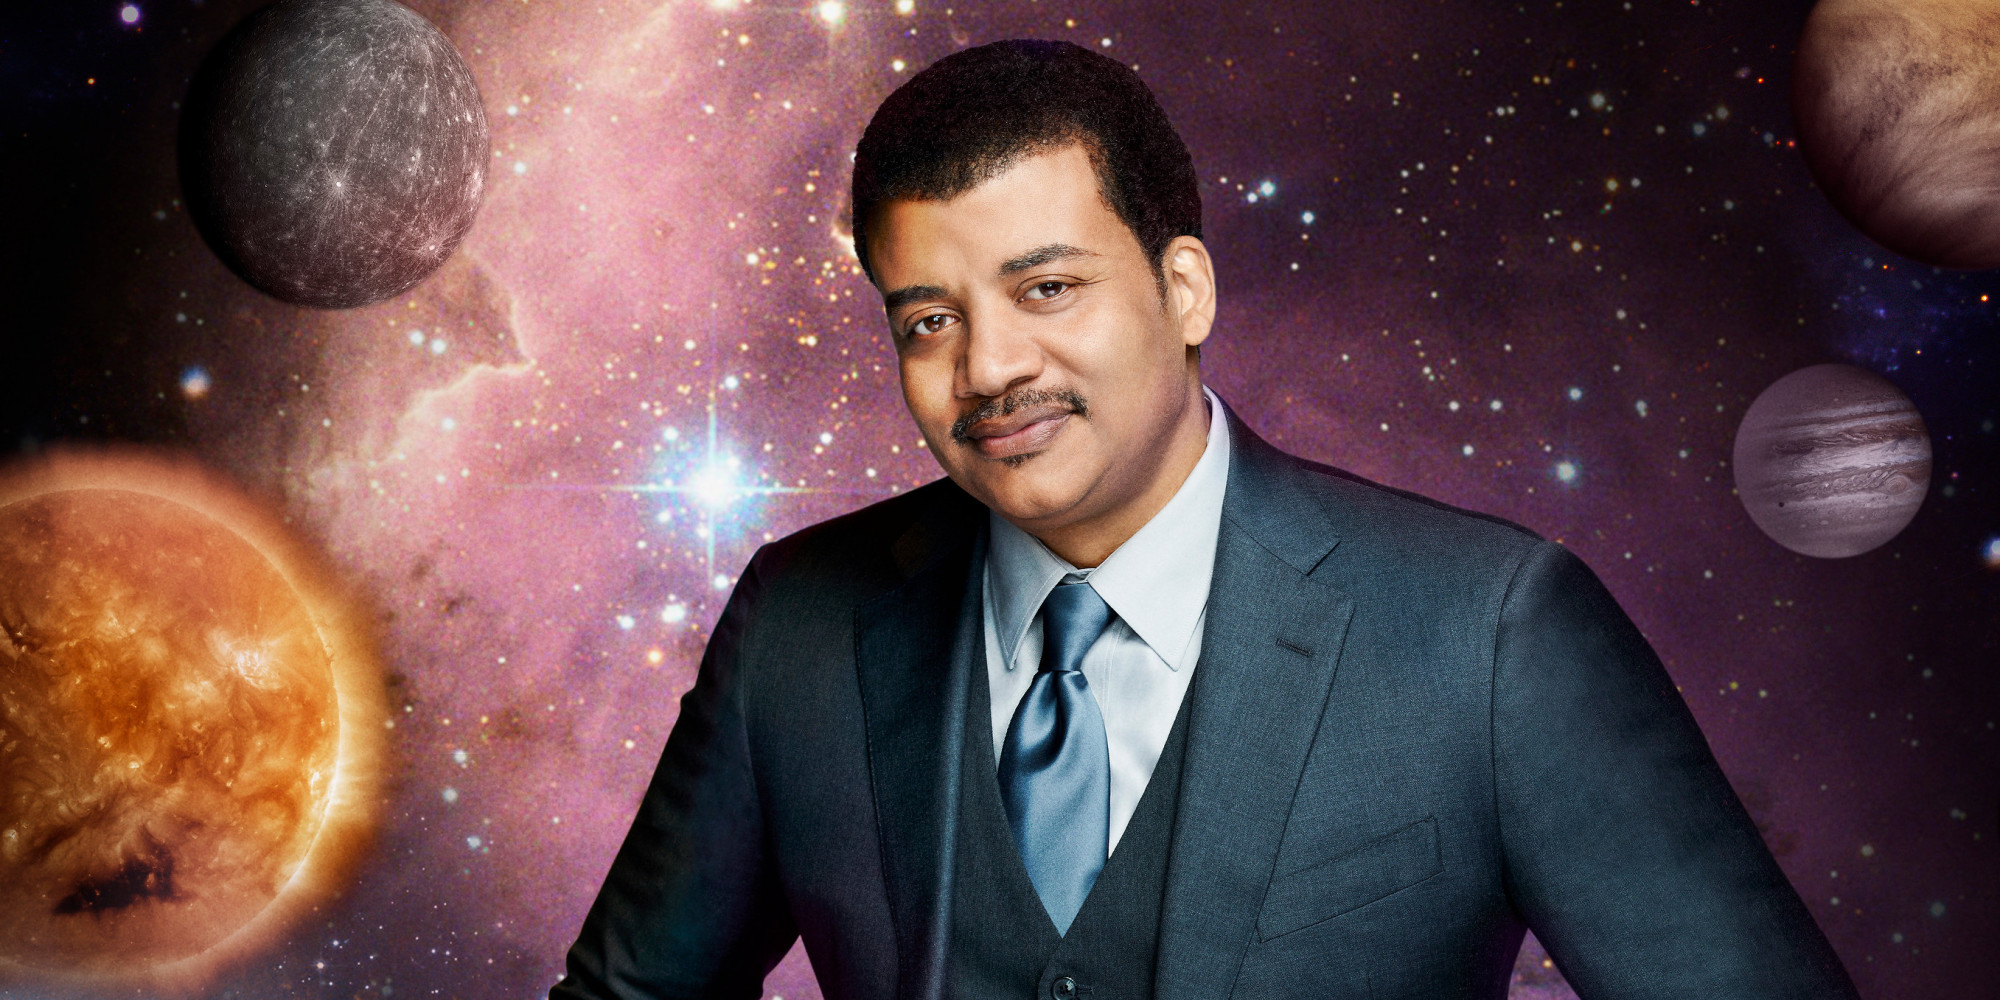 Neil Degrasse Tyson (Huffinton Post)